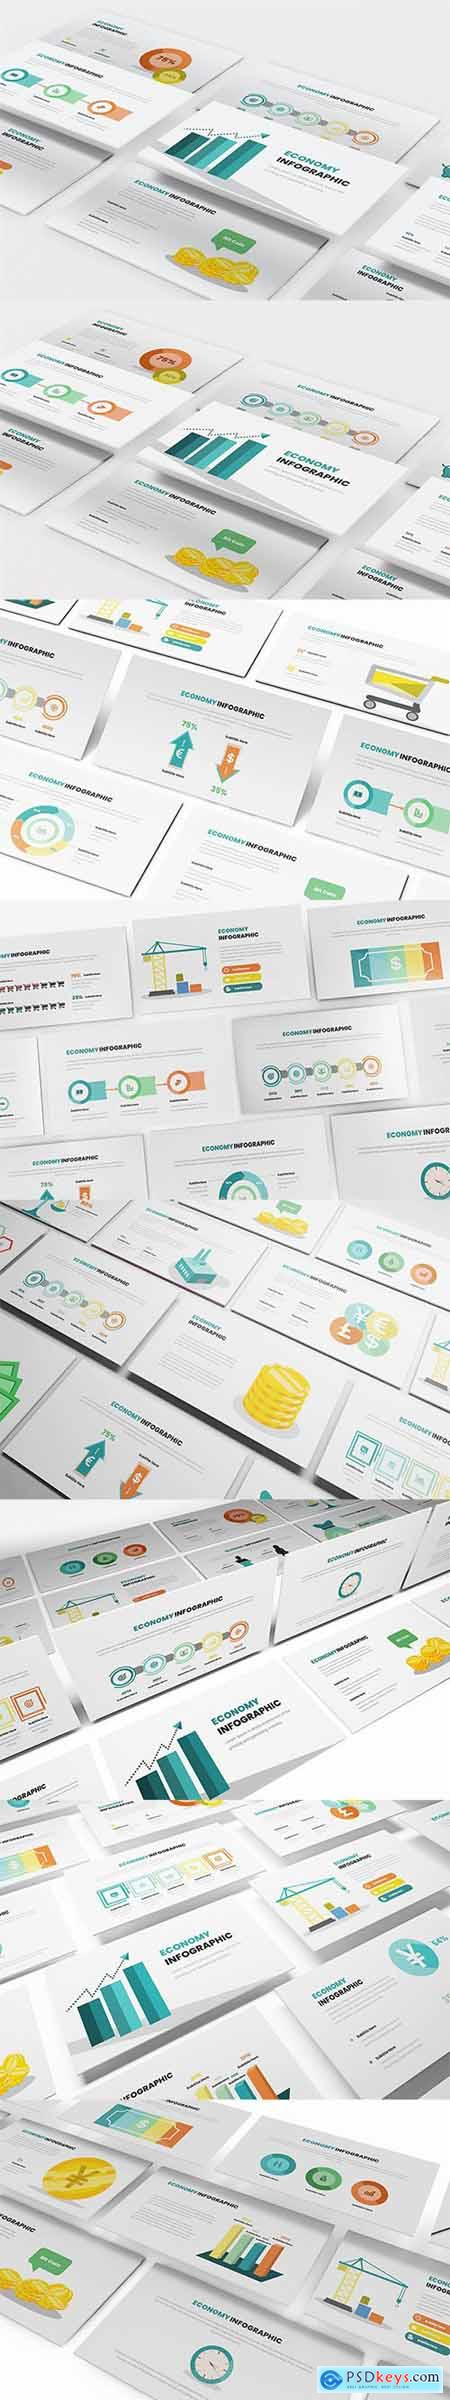 Economy Infographic Powerpoint, Keynote and Google Slides Templates